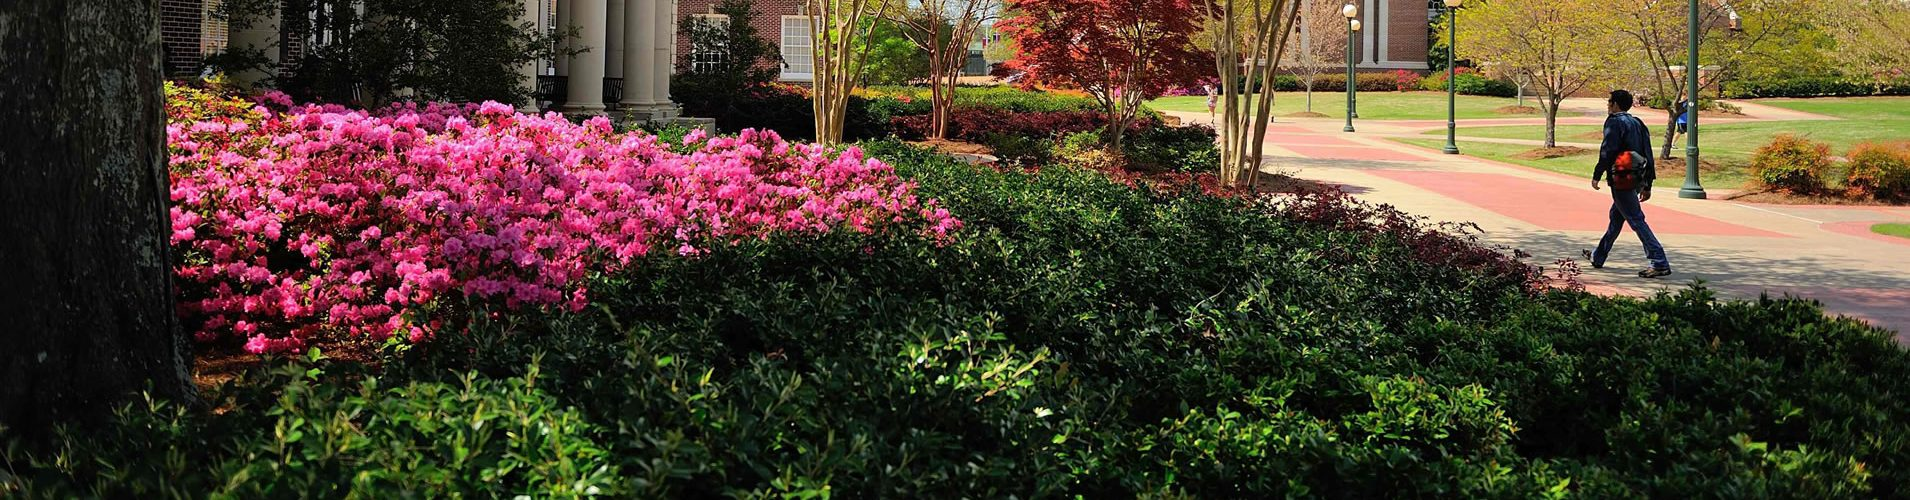 Nashville Landscaping Company Landscaping Company Brentwood Tn